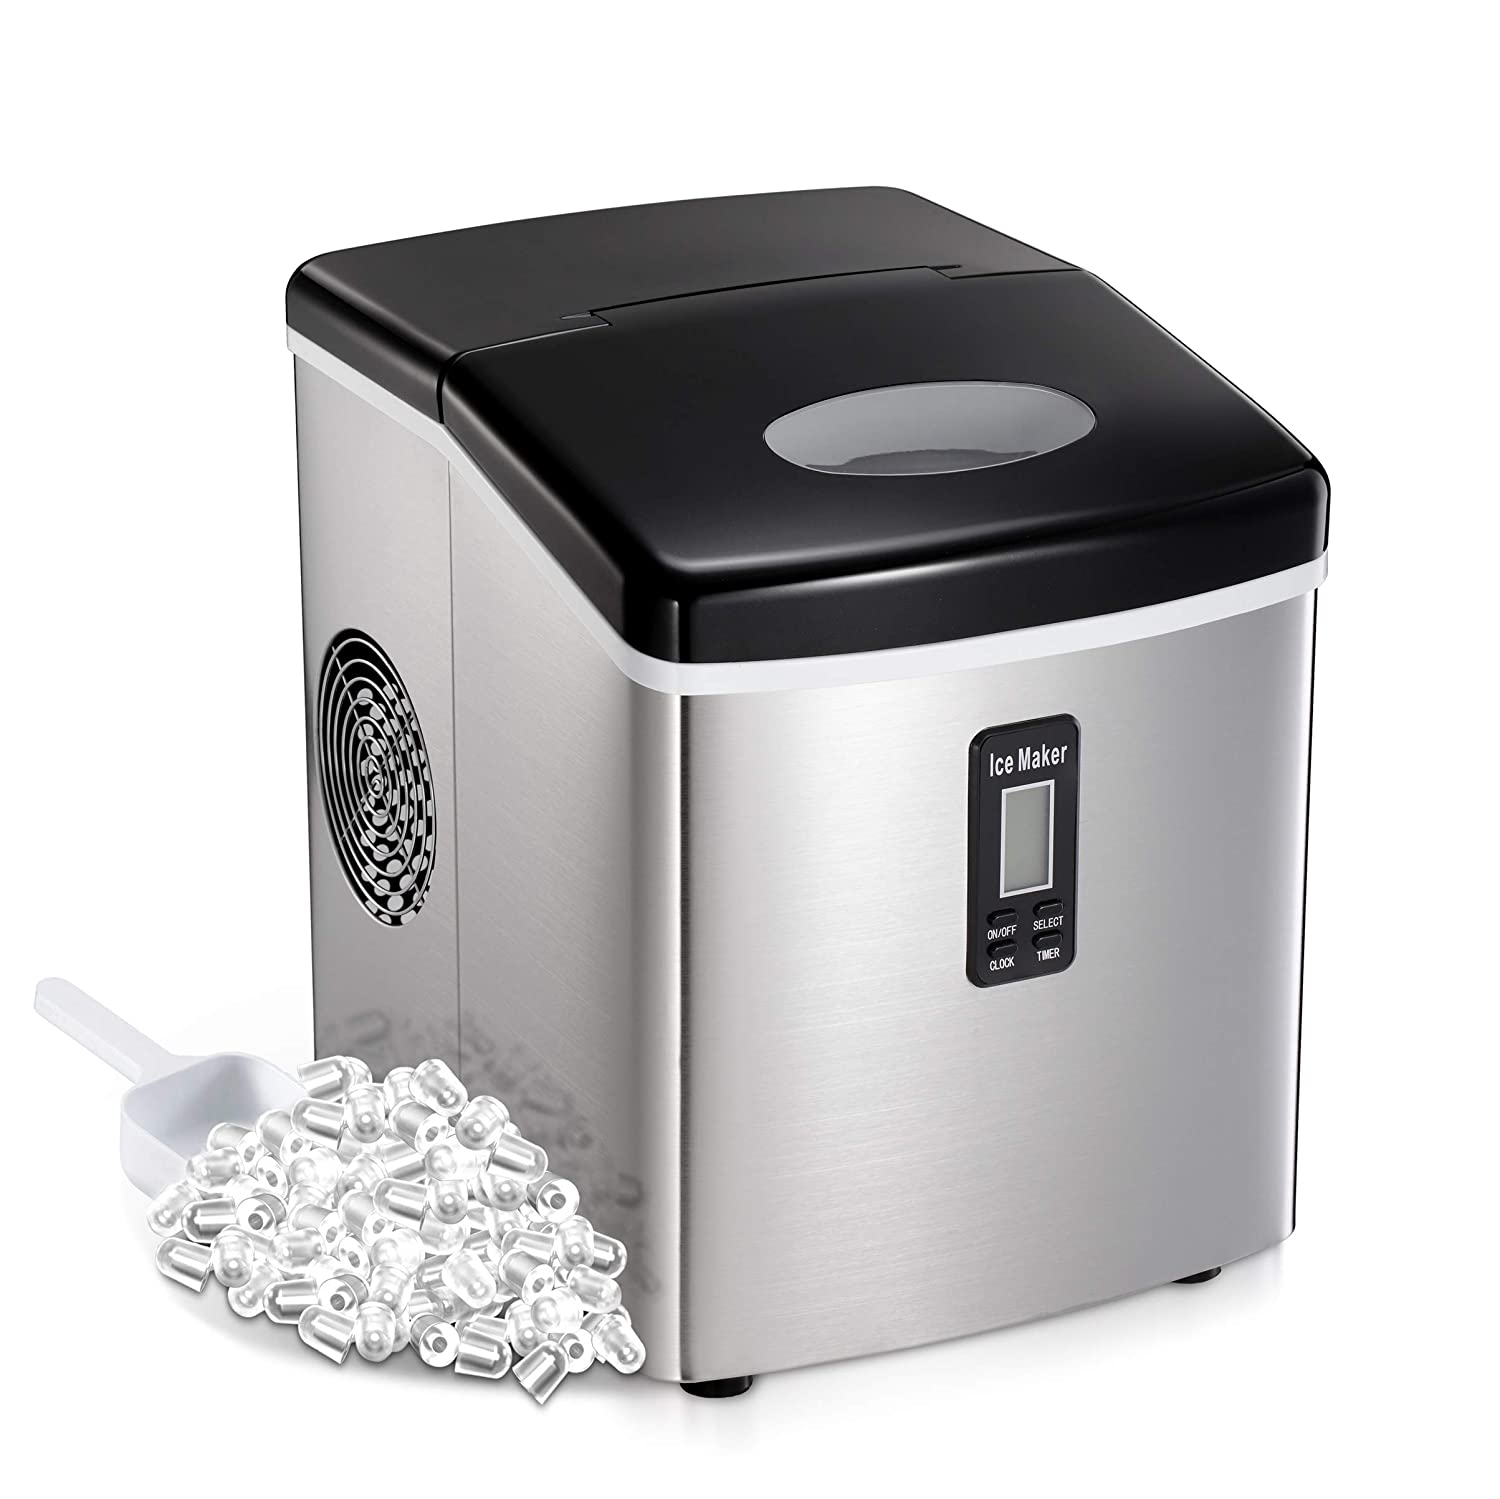 AGLUCKY Countertop Ice Maker Machine,Portable Automatic Ice Maker,Ice Cube Ready in 7mins,2.6Lb Ice Storage,48lbs/24h,Ice Scoop,Basket,Self-clean Function,See-through Lid,Stainless Steel Cover